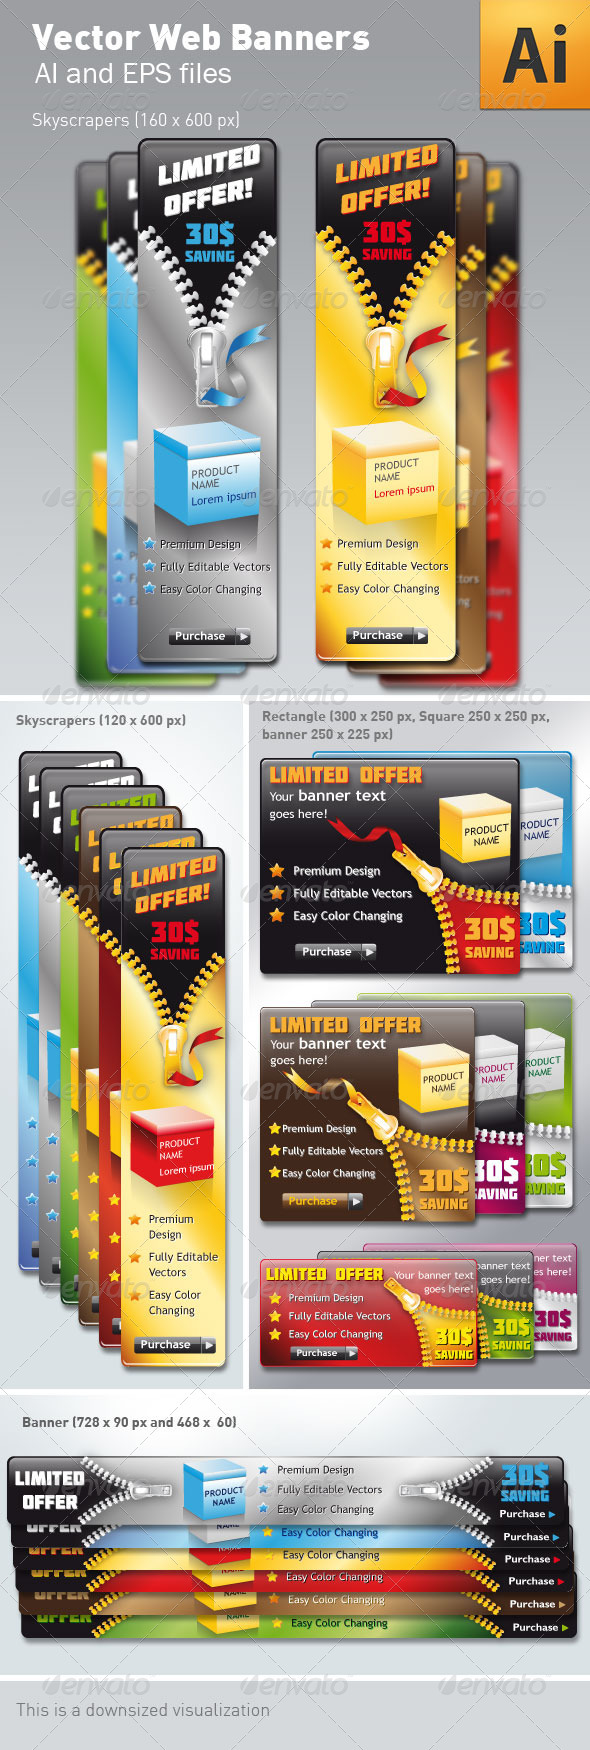 Vector Web Banners